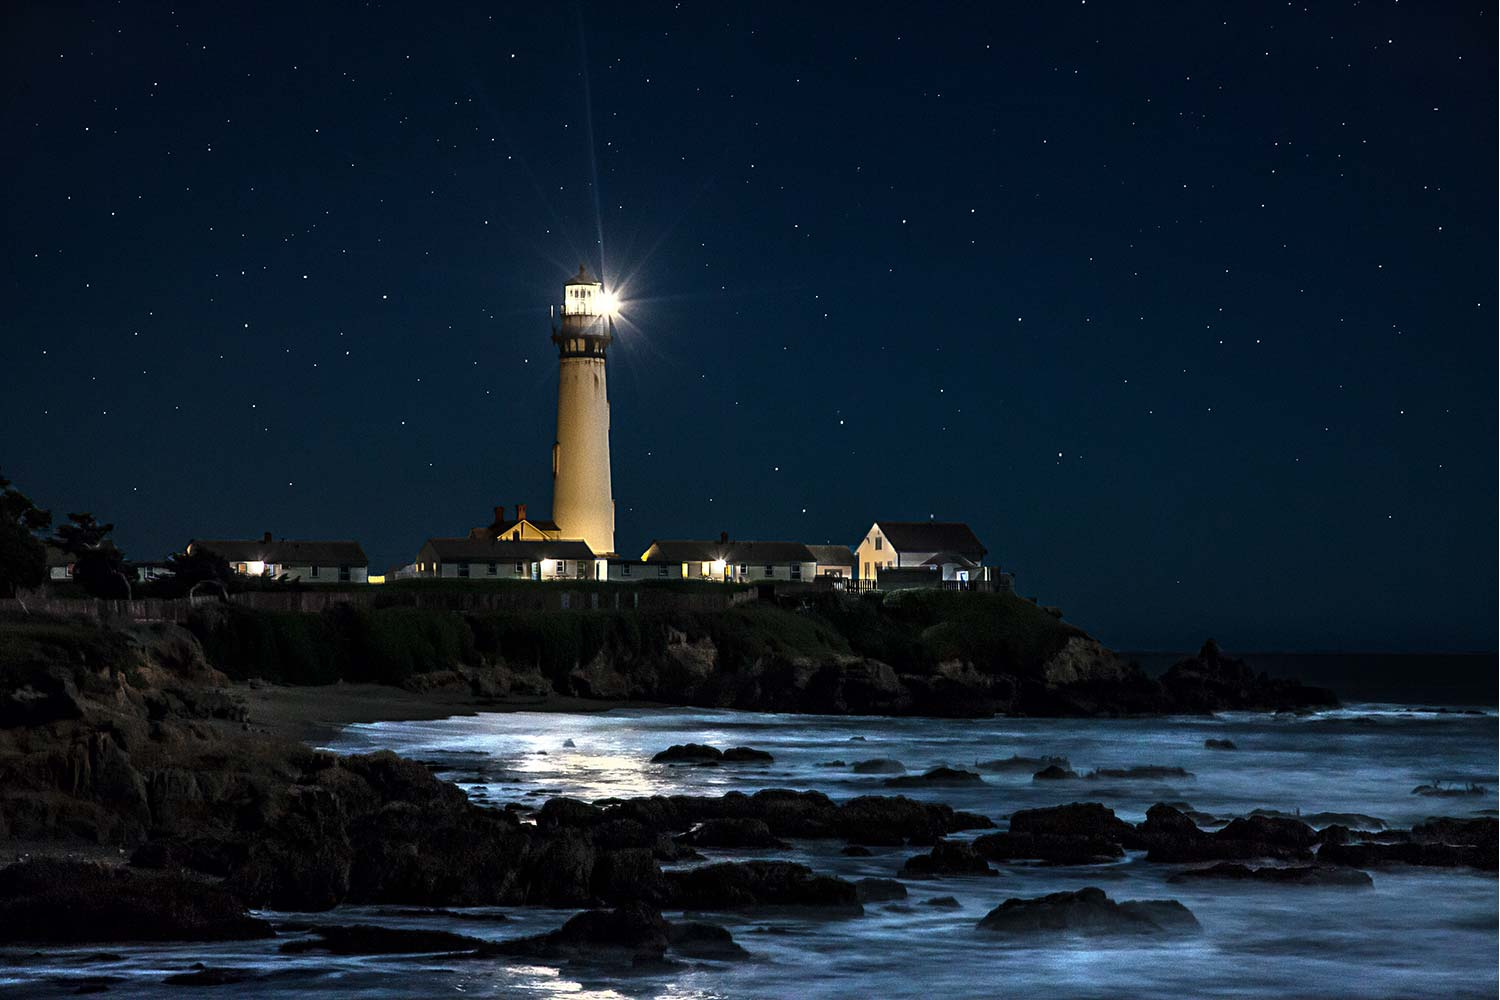 Night Photography: Digital Photography School Resources